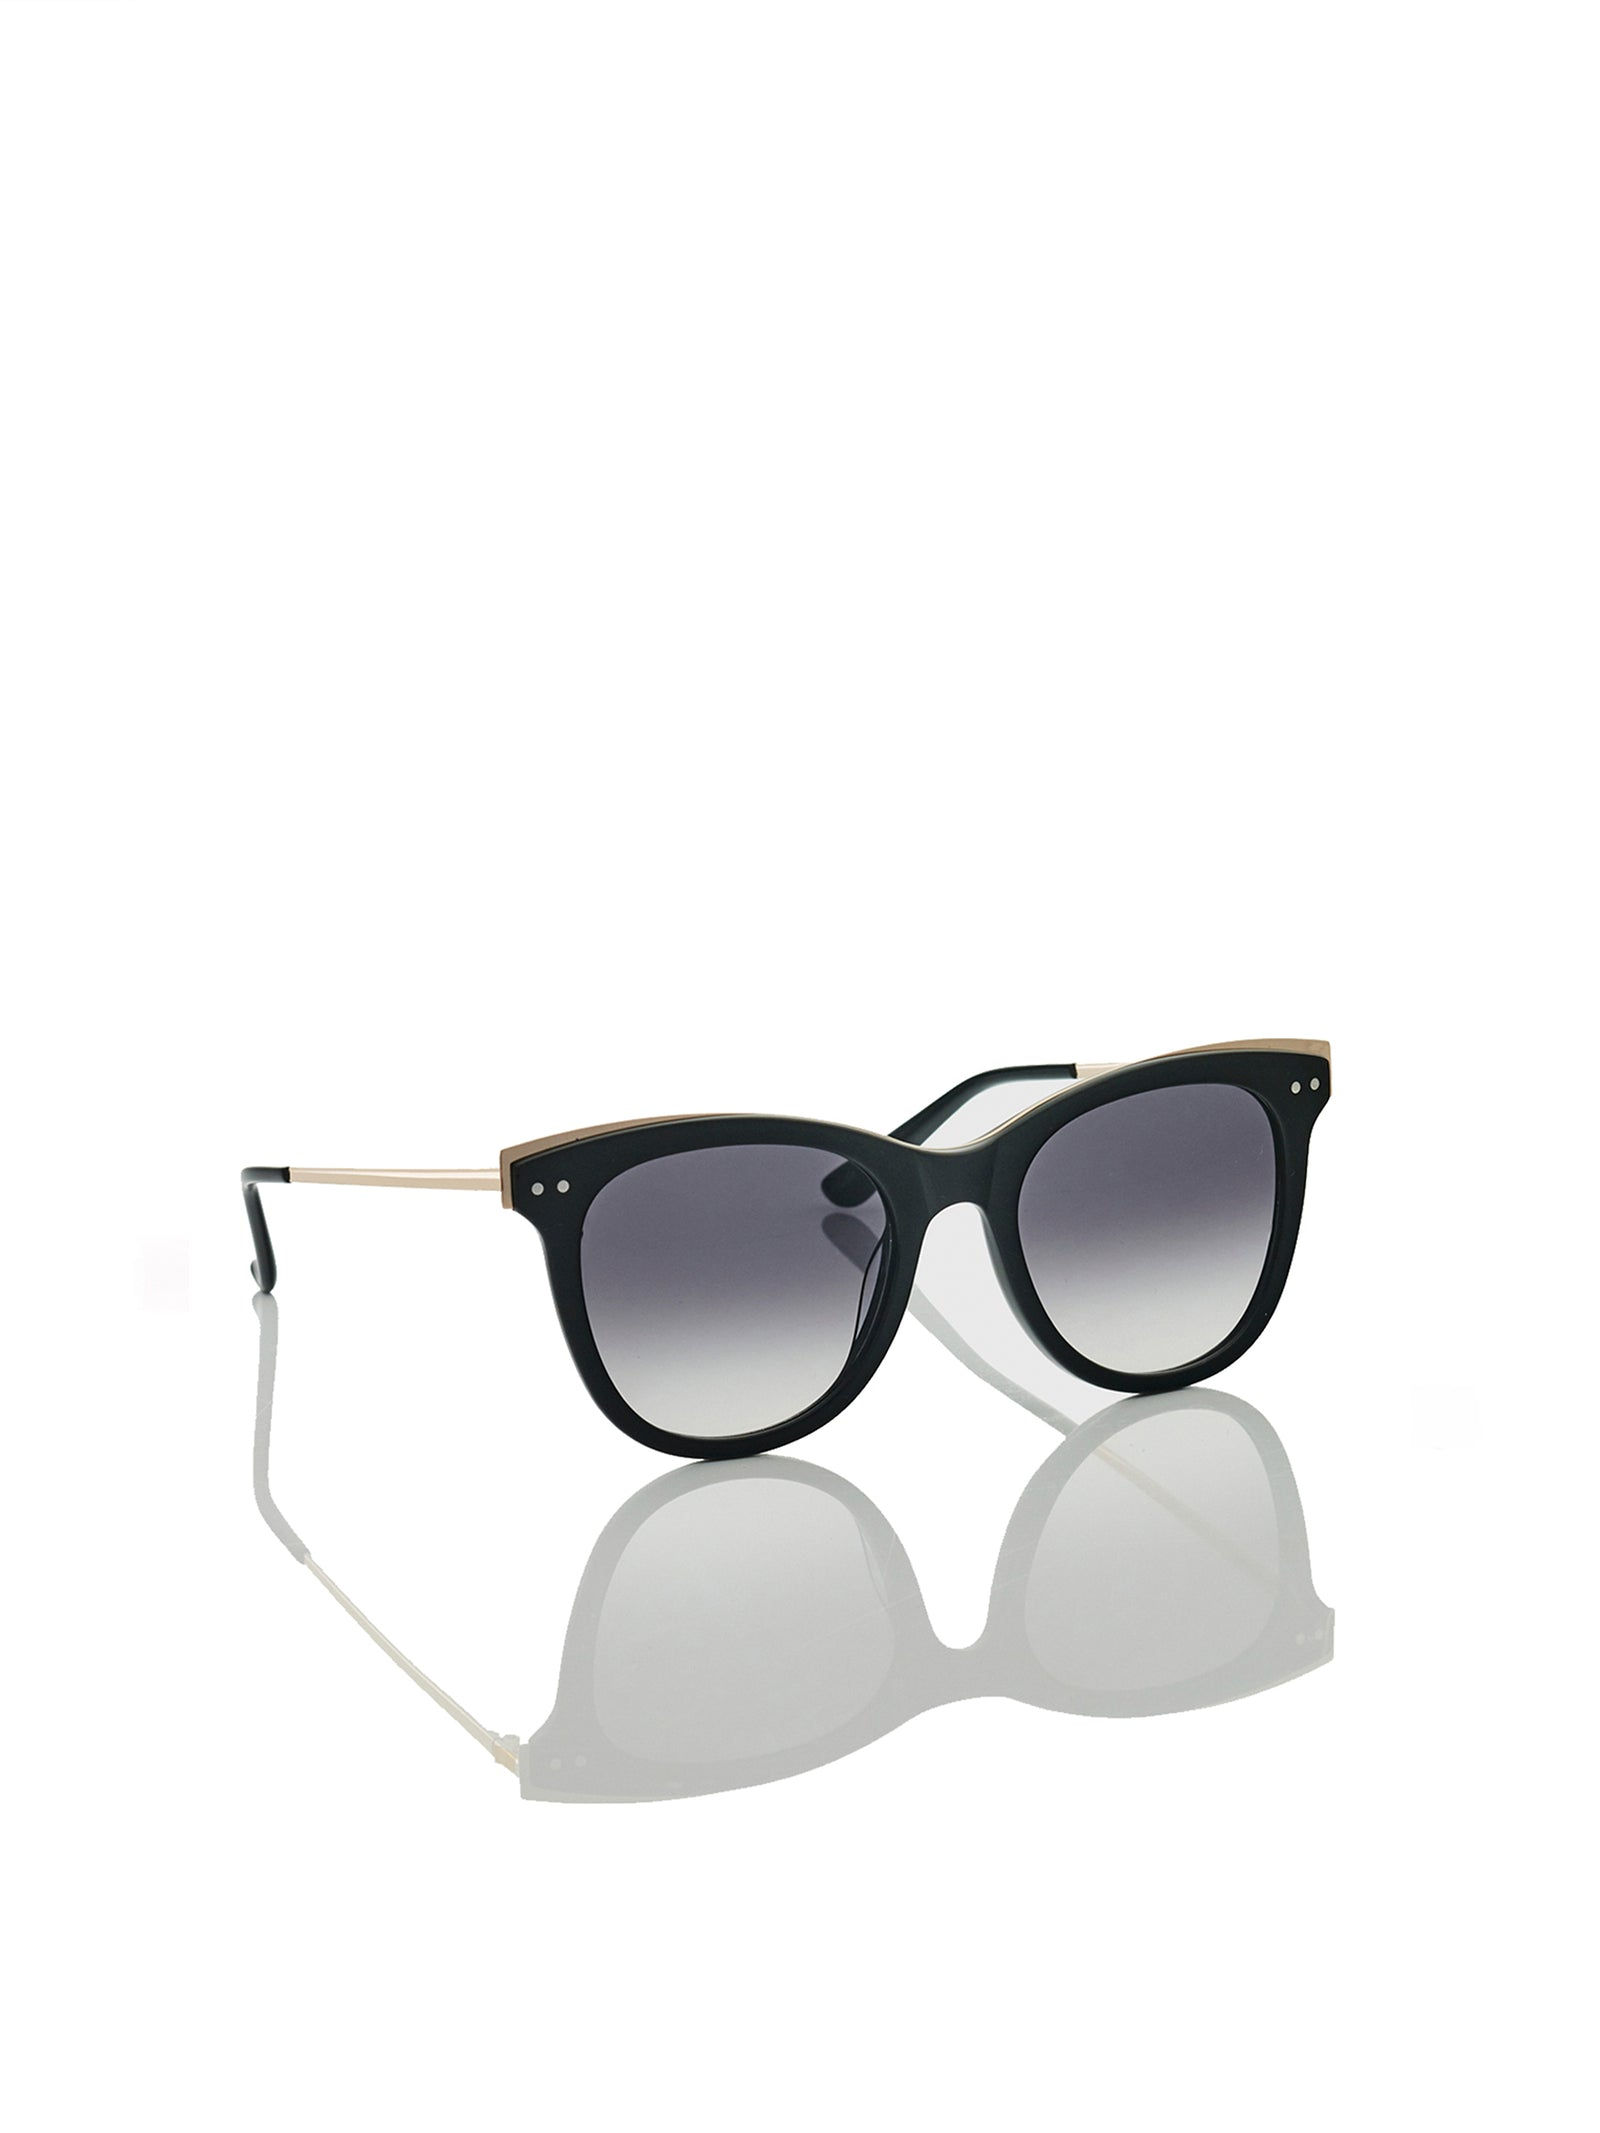 JH Eyewear No. 06 (acetate) black gold